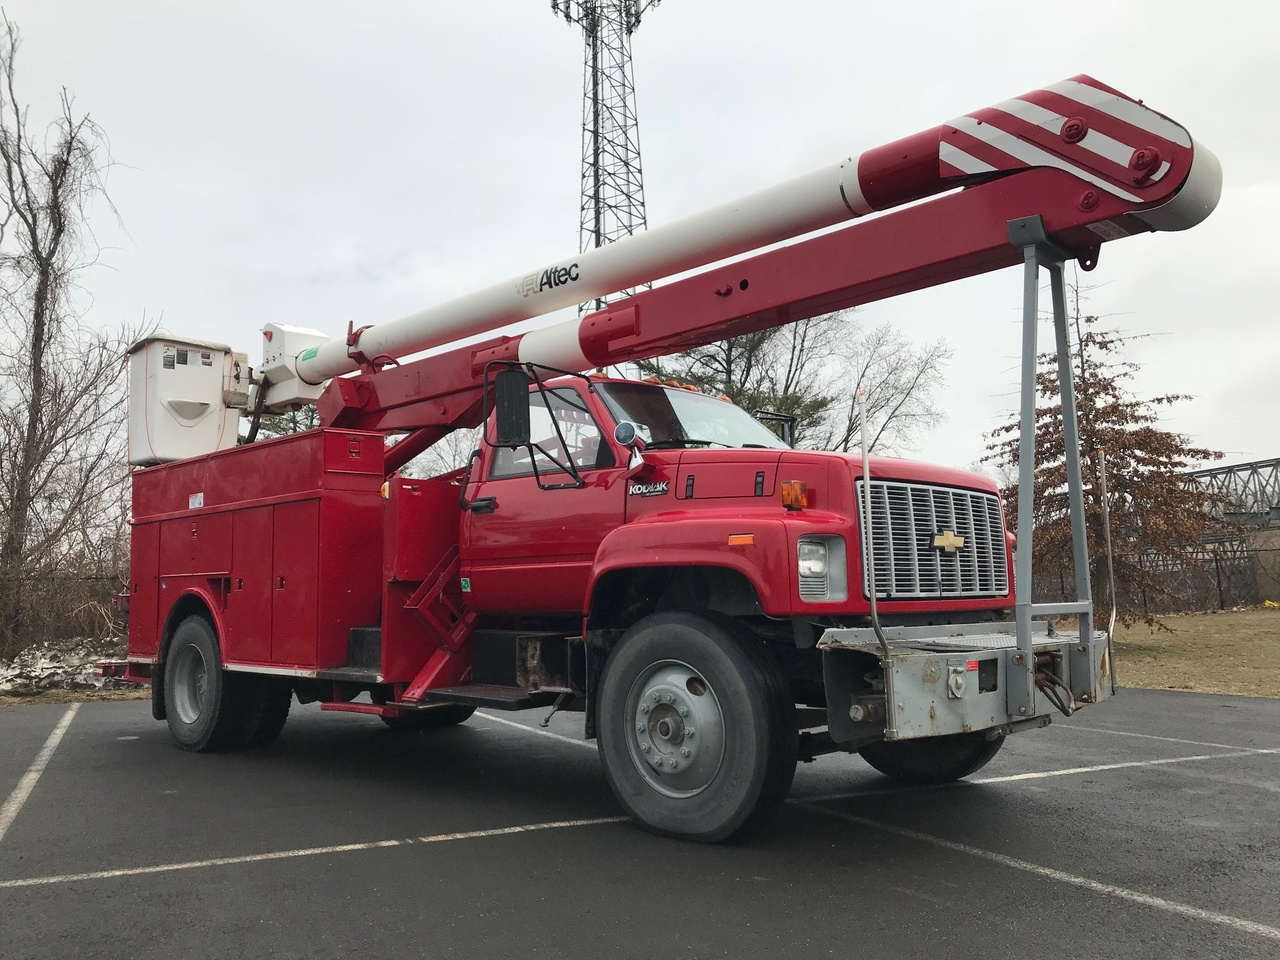 1993 Chevrolet KODIAK 4x2 Altec AN652 Bucket Truck - Custom